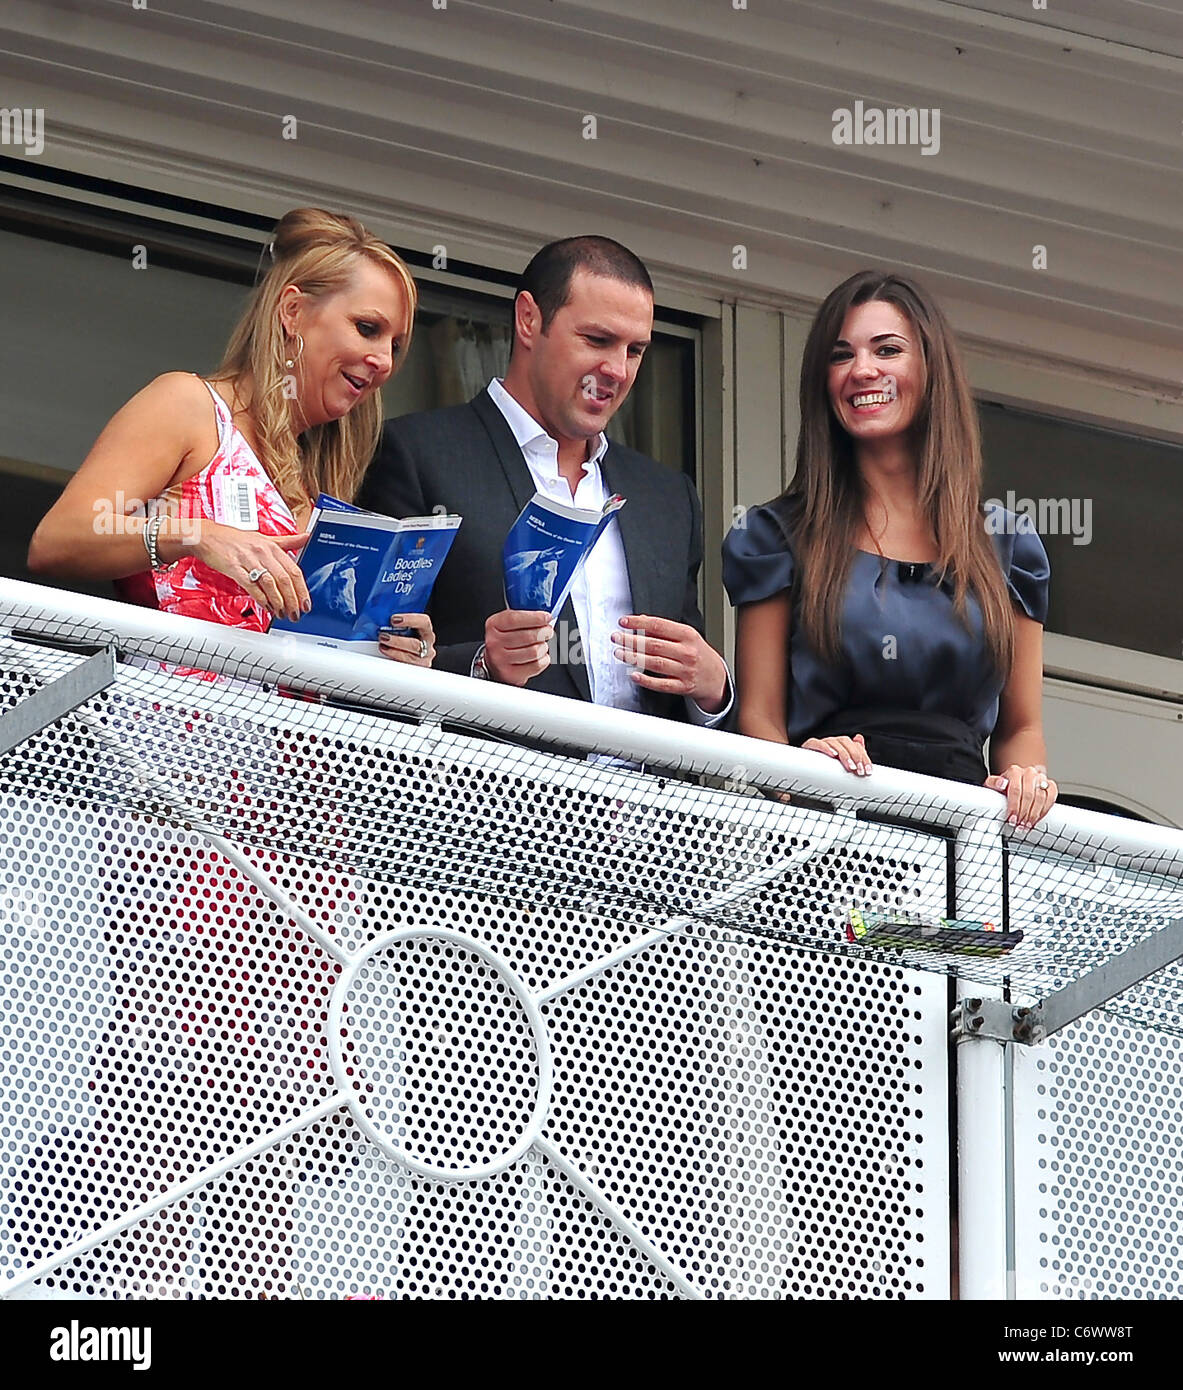 Paddy McGuiness with his fiancee Christine Martin watching the horse racing on ladies day at Chester Races Chester, - Stock Image